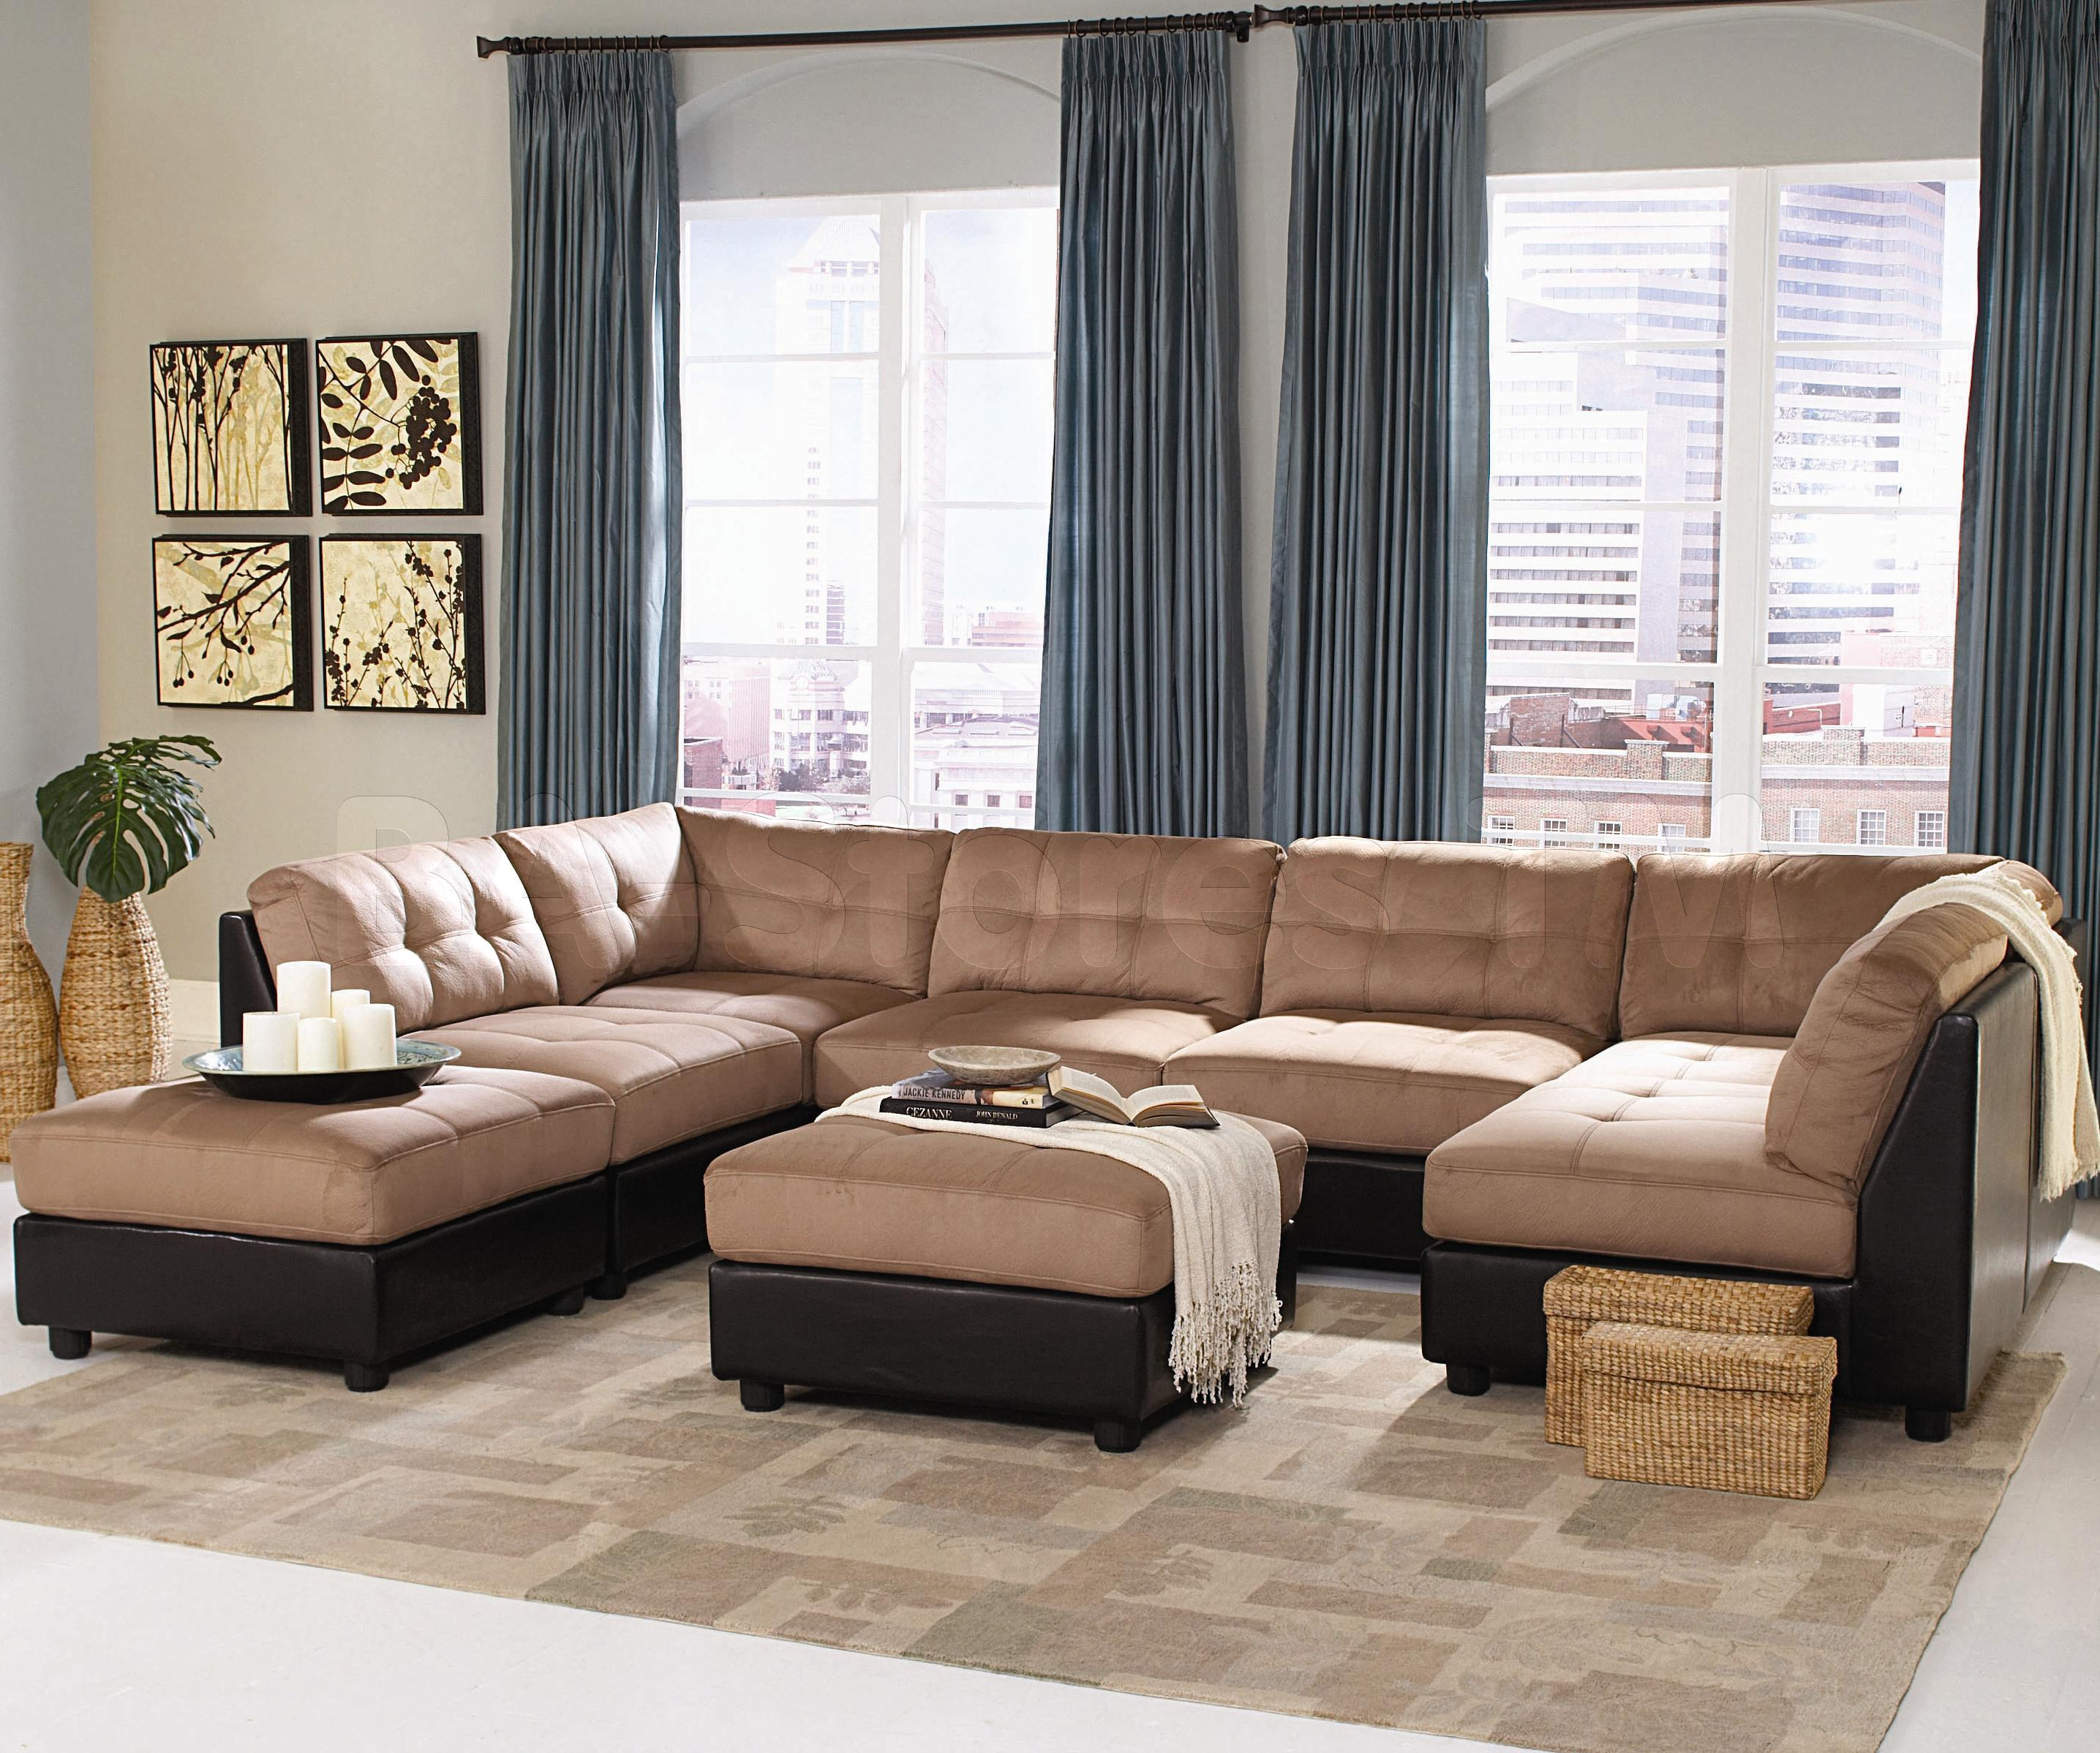 navy sofa beige walls how to decorate living room with dark chocolate leather sofas make my tidy and orderly homesfeed